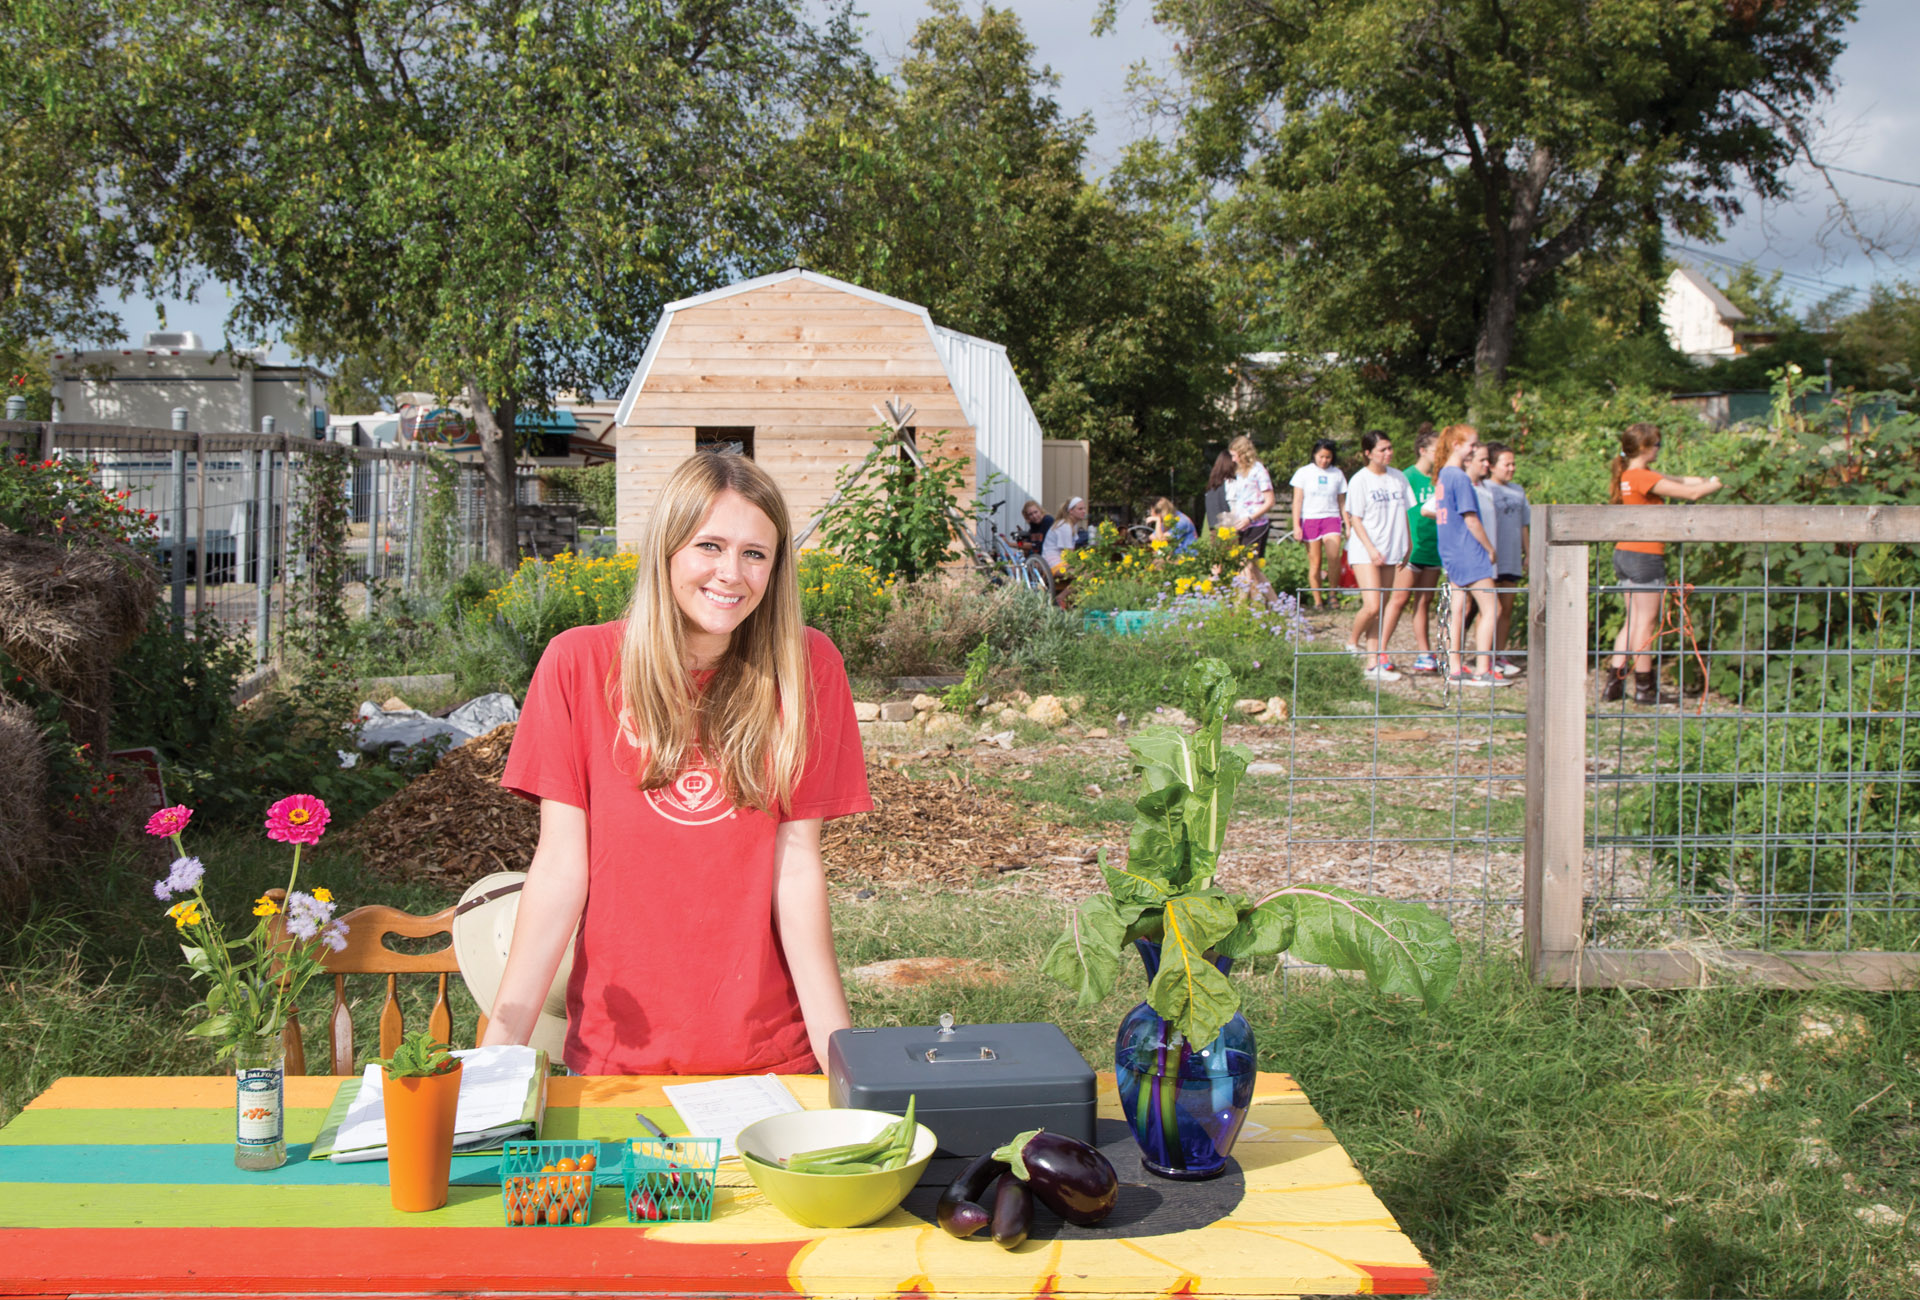 Photo of community garden with a smiling woman at the vegetable stand. A large shed is in the background along with a group of students being shown how to harvest vegetables.